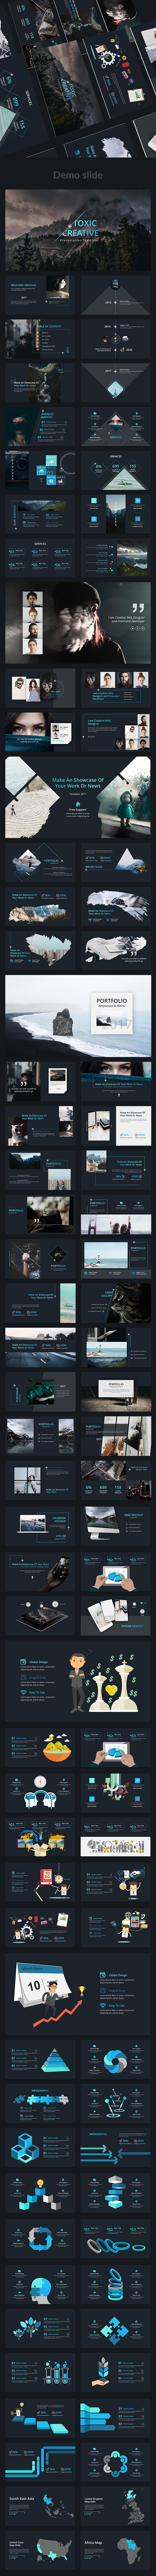 Toxic V2 Creative Powerpoint Template - Creative PowerPoint Templates